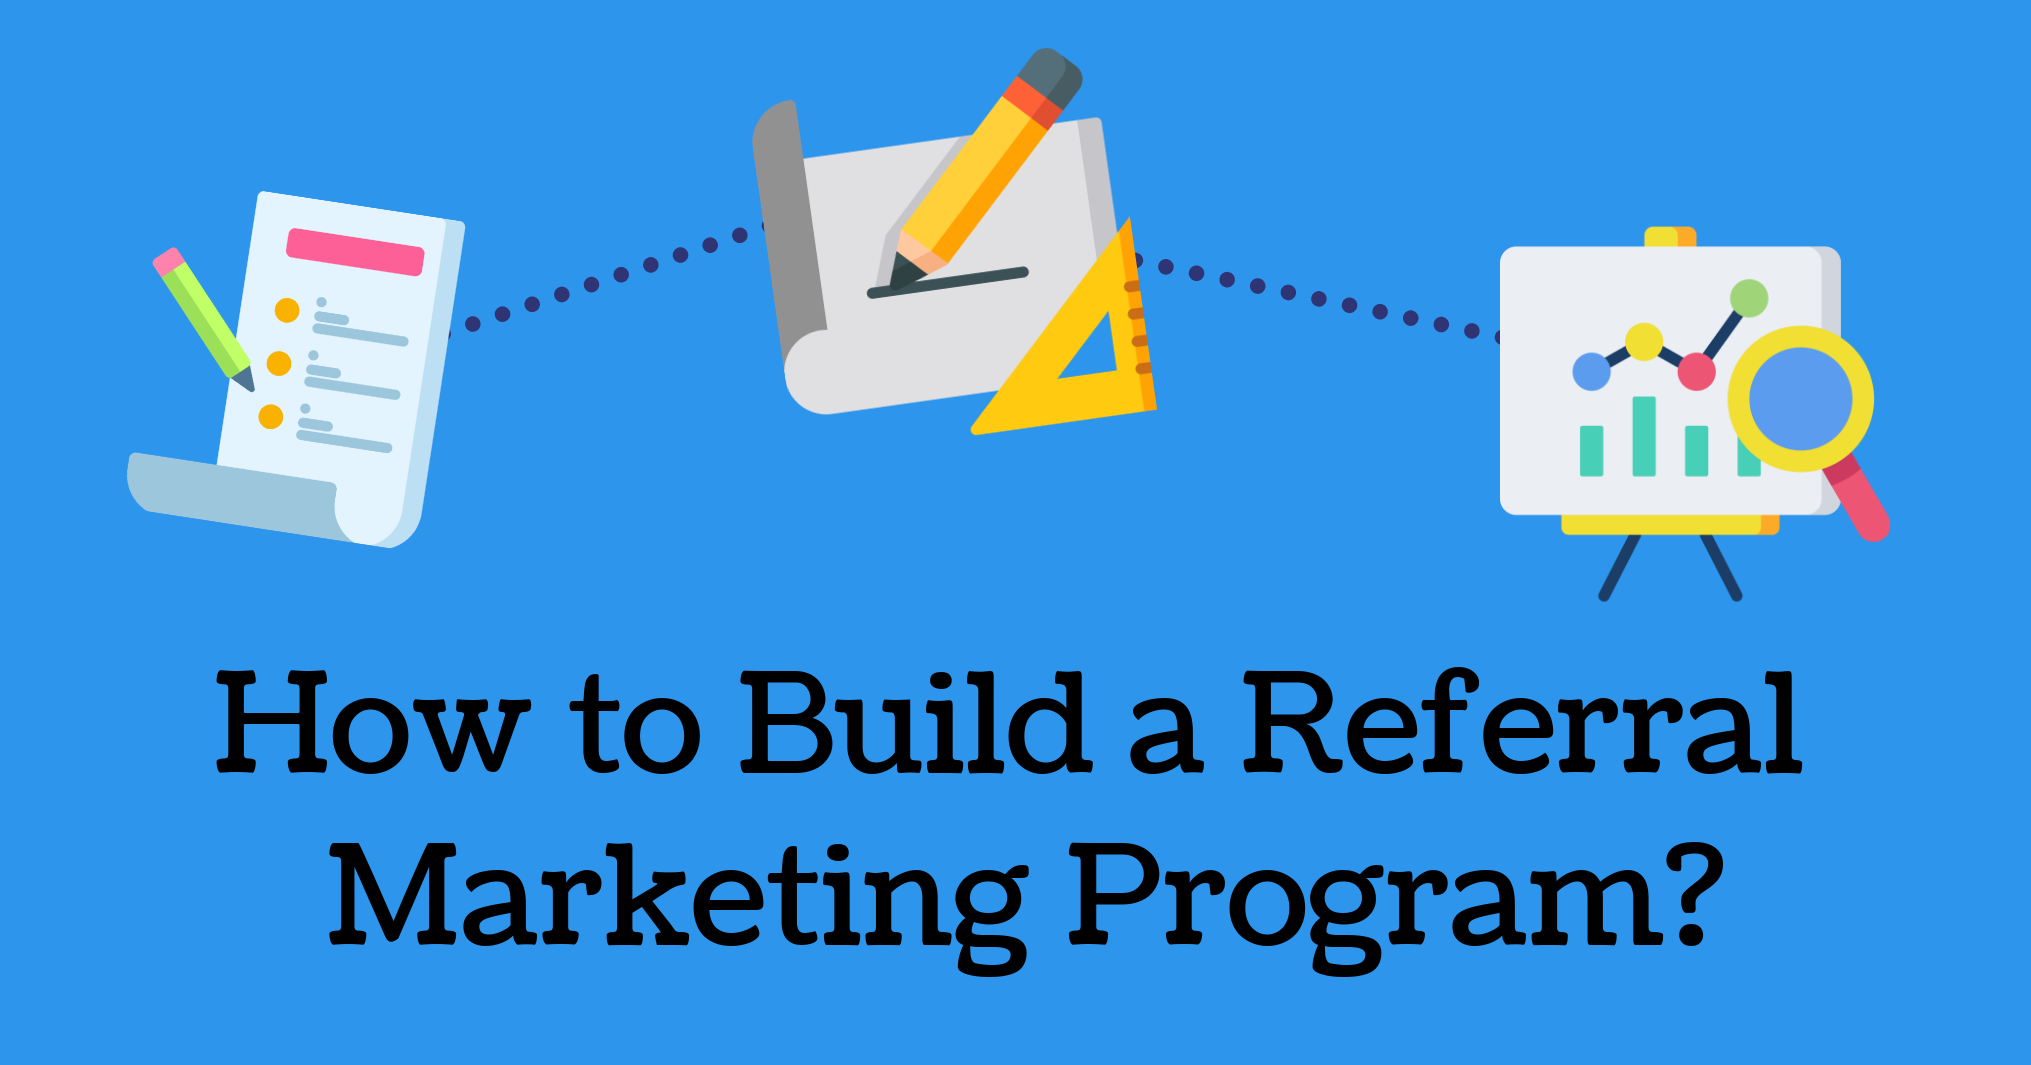 How to Setup a Referral Program for Your Business?